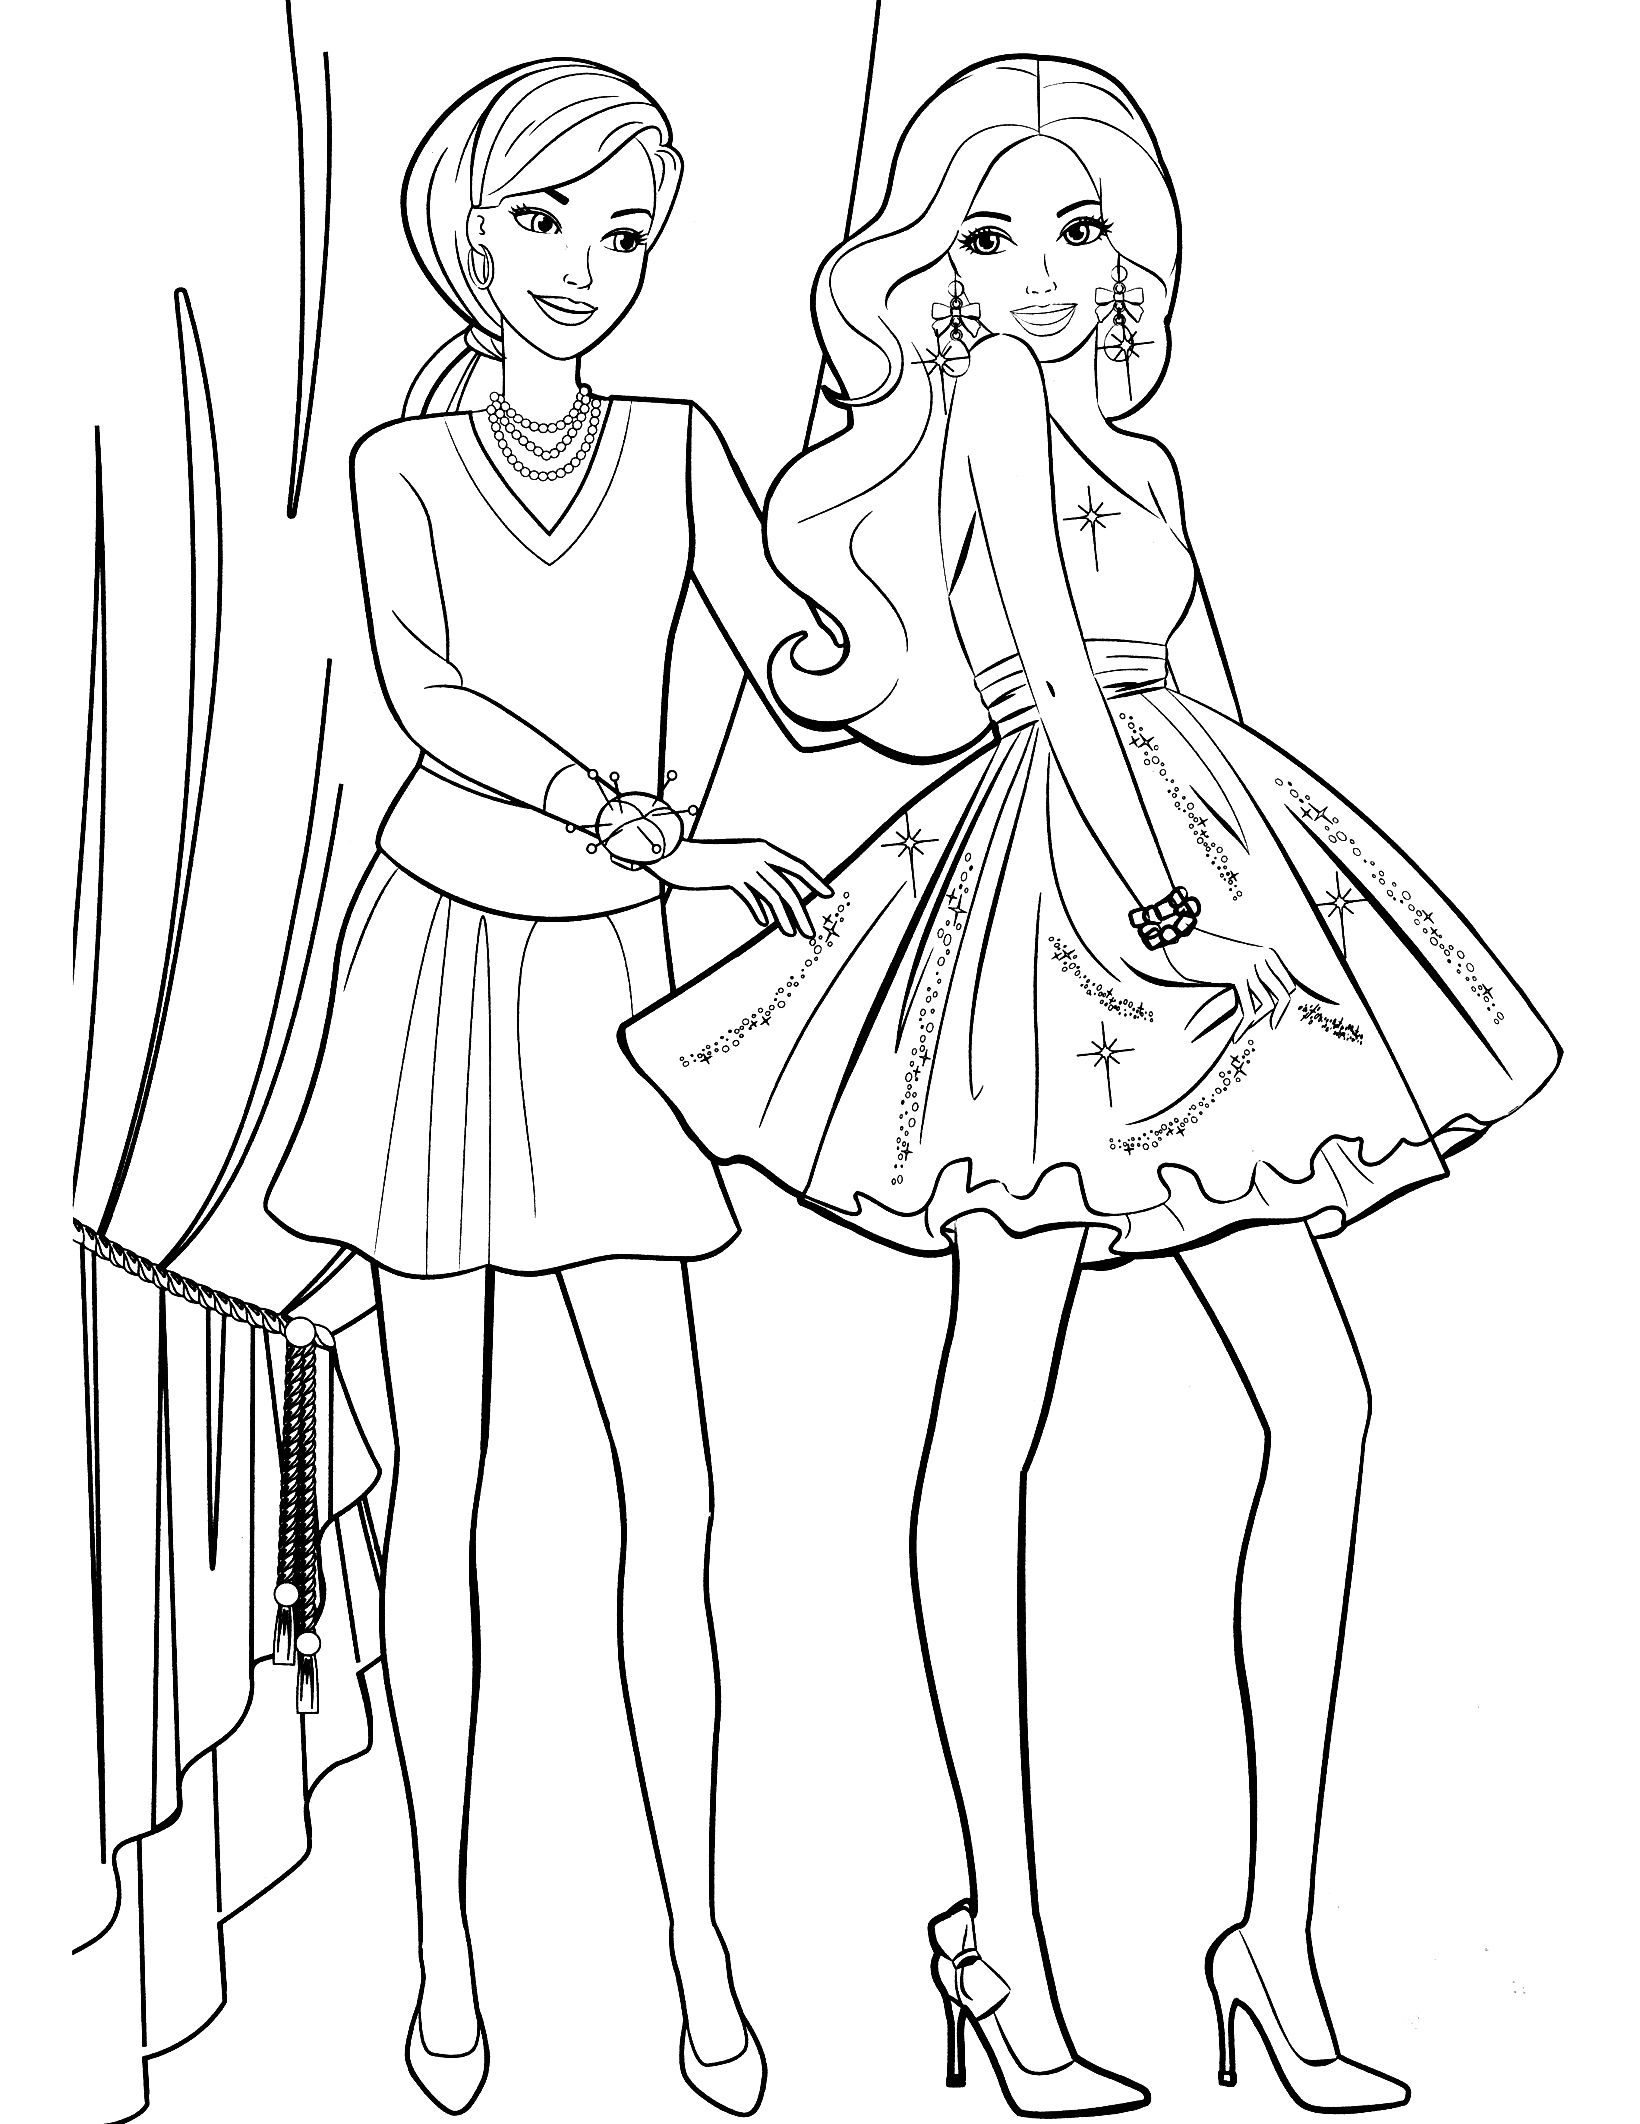 Barbie Girl Coloring Pages Nice Coloring Pages For Kids   Fashion ...